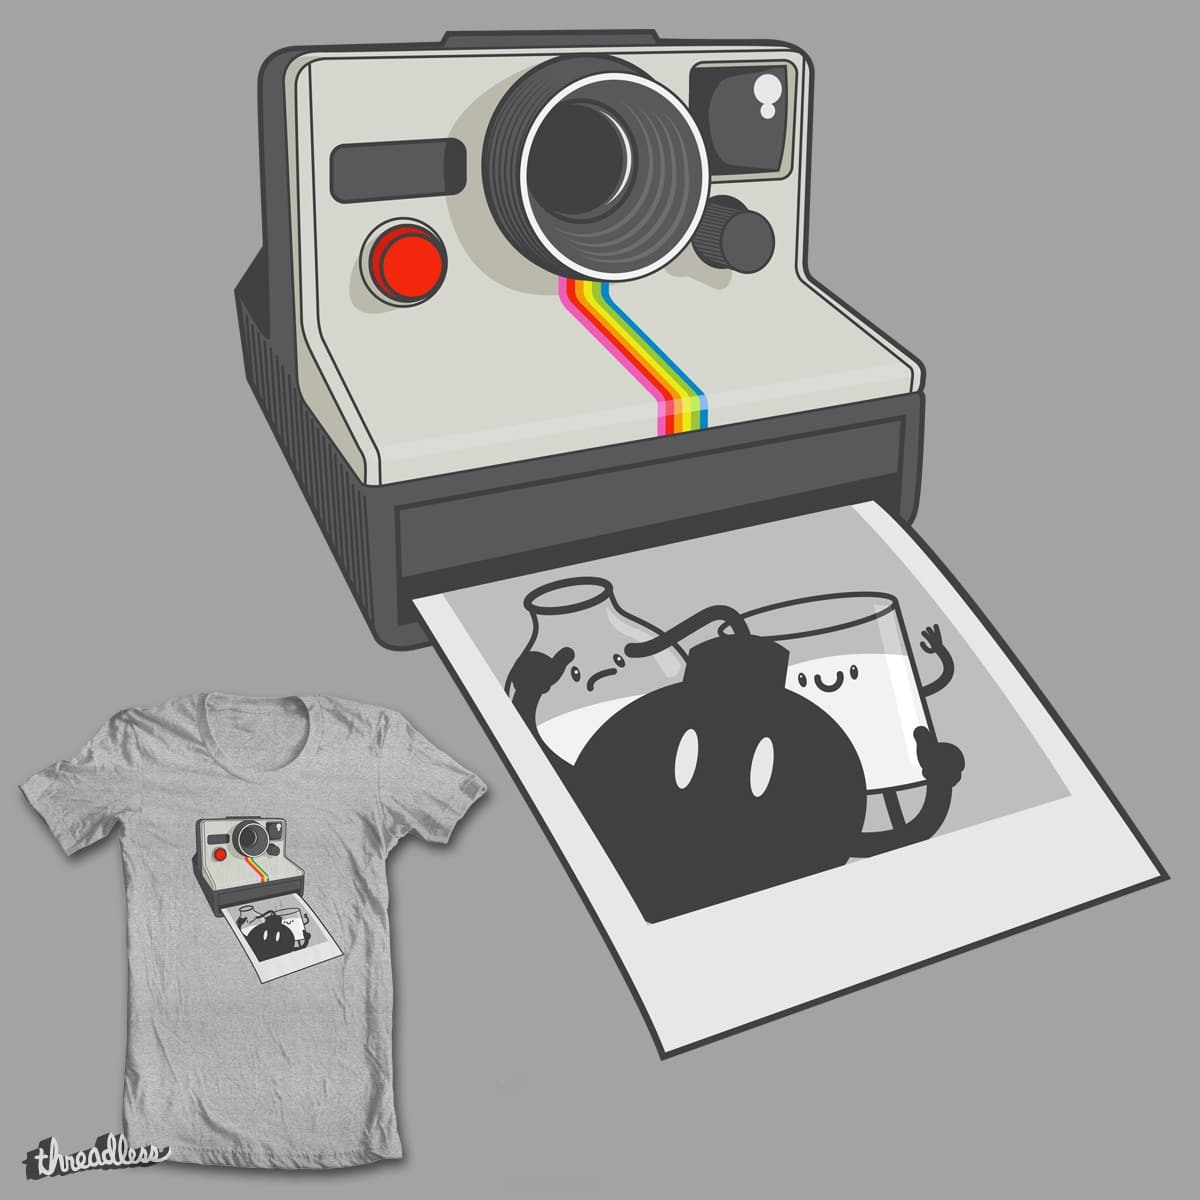 Photo Bomb by mip1980 on Threadless